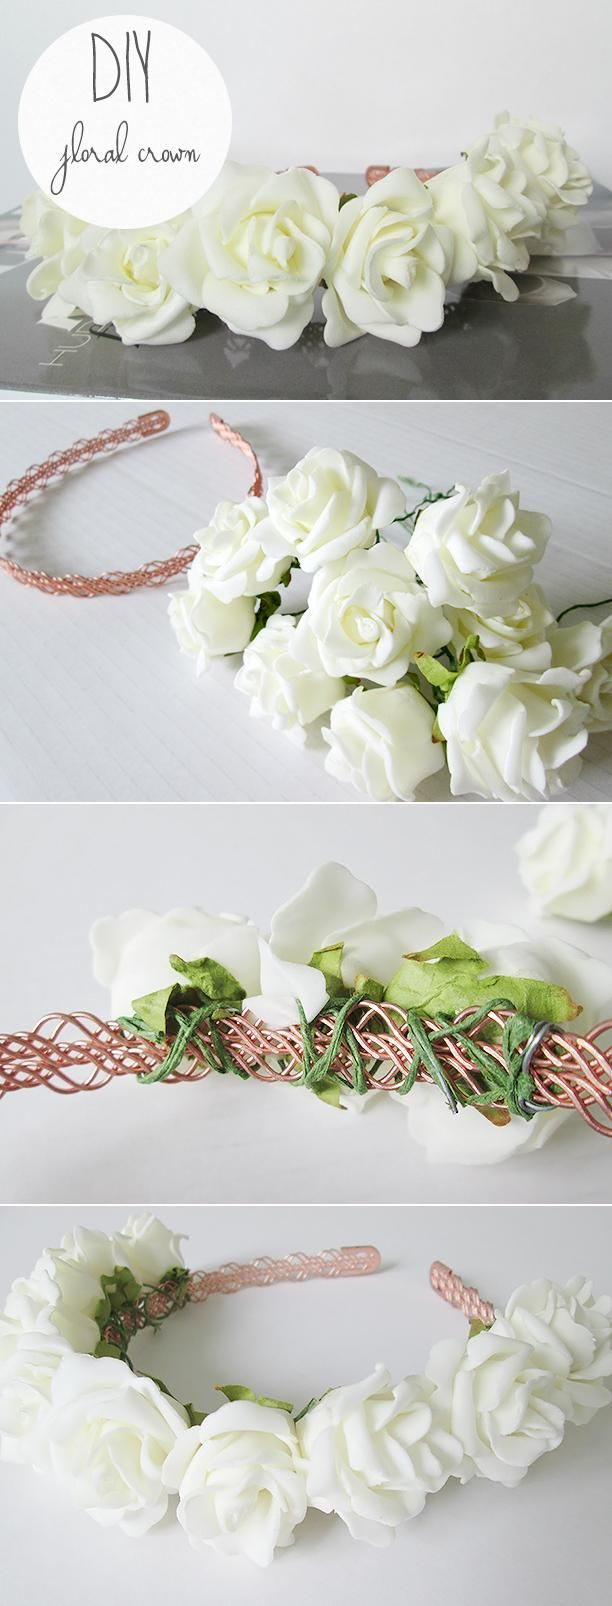 DIY Floral Crown - for the maids at the shower?